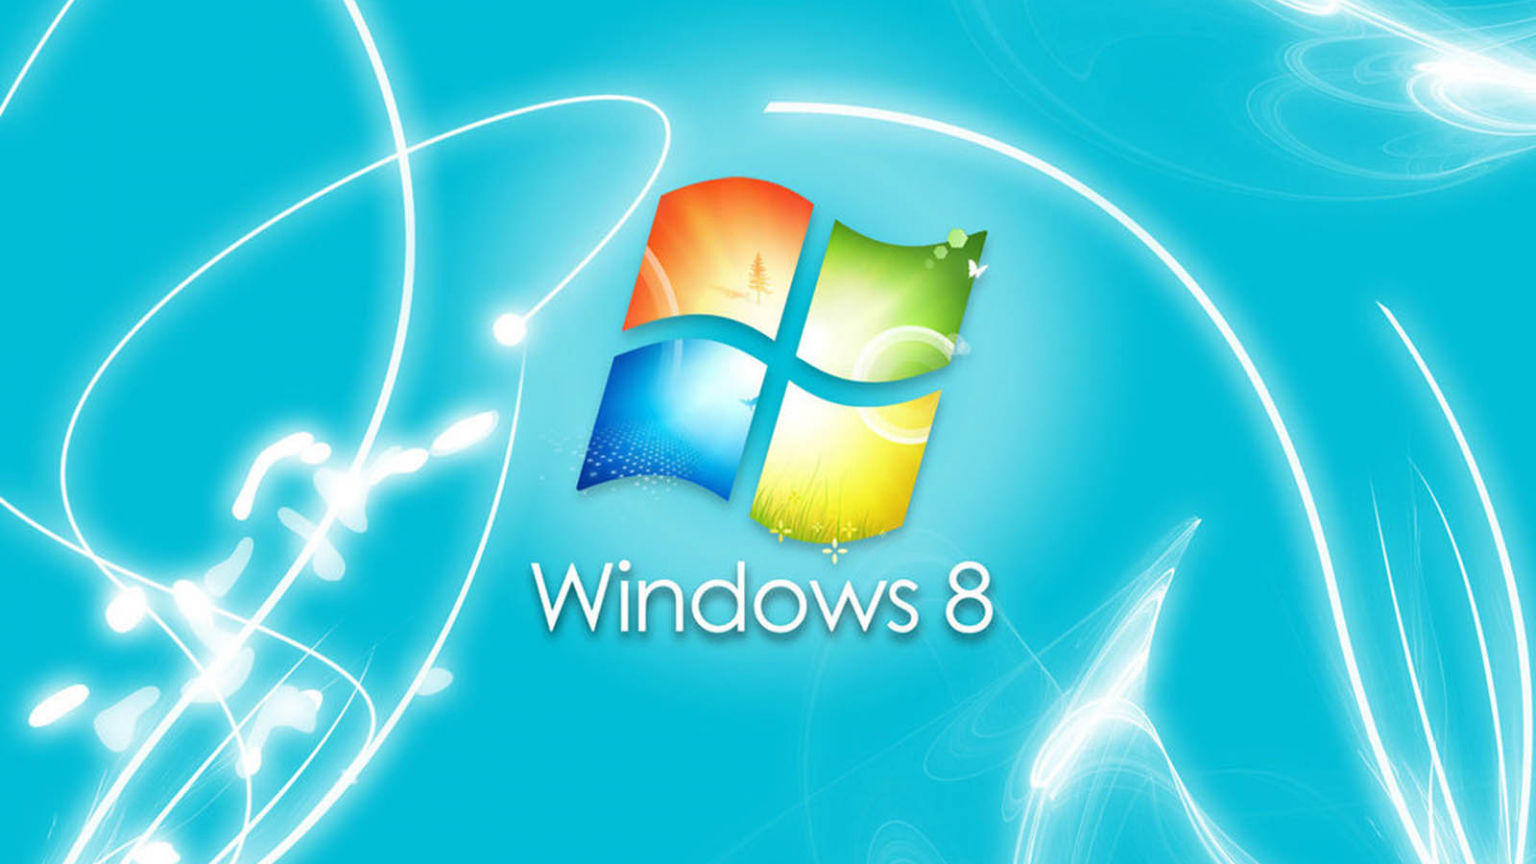 Wallpapers Windows 8 Desktop And Backgrounds 1600x1200 Download Resolutions 1600x900